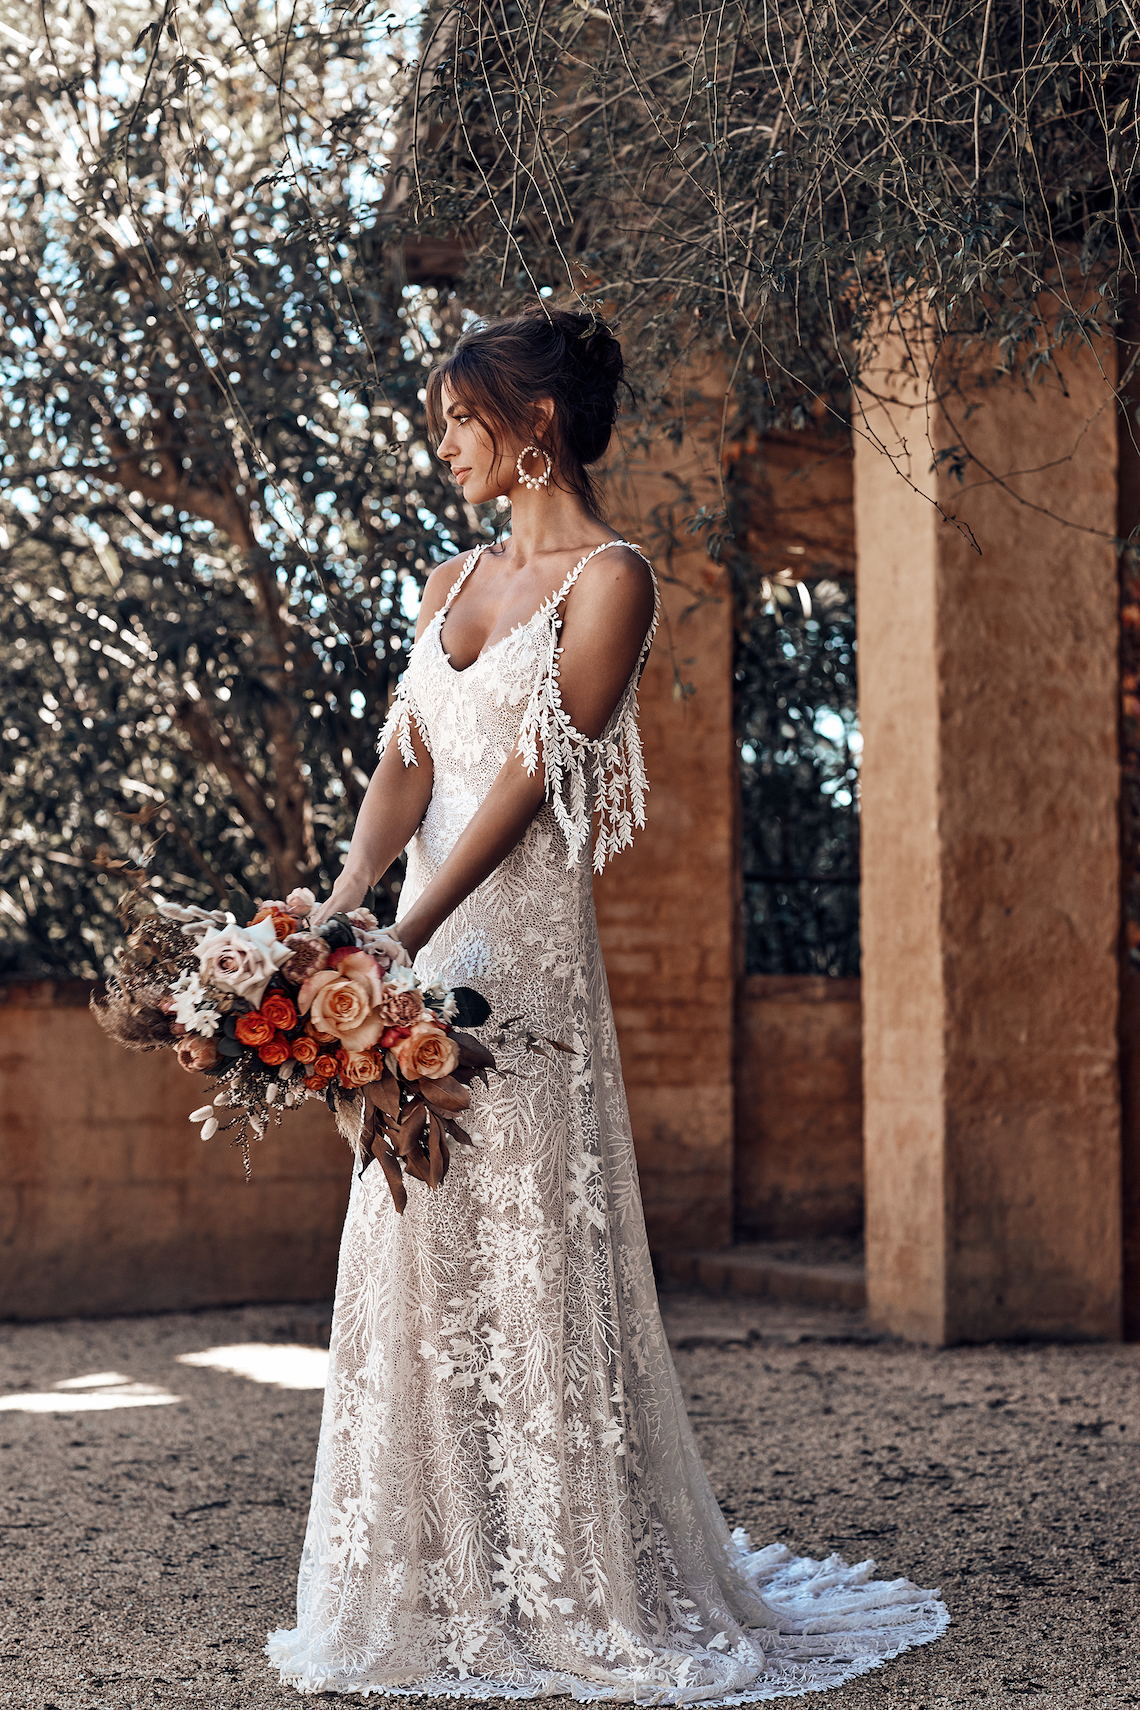 Free-Spirited Bohemian Icon Wedding Dress Collection by Graces Loves Lace | Sol 2